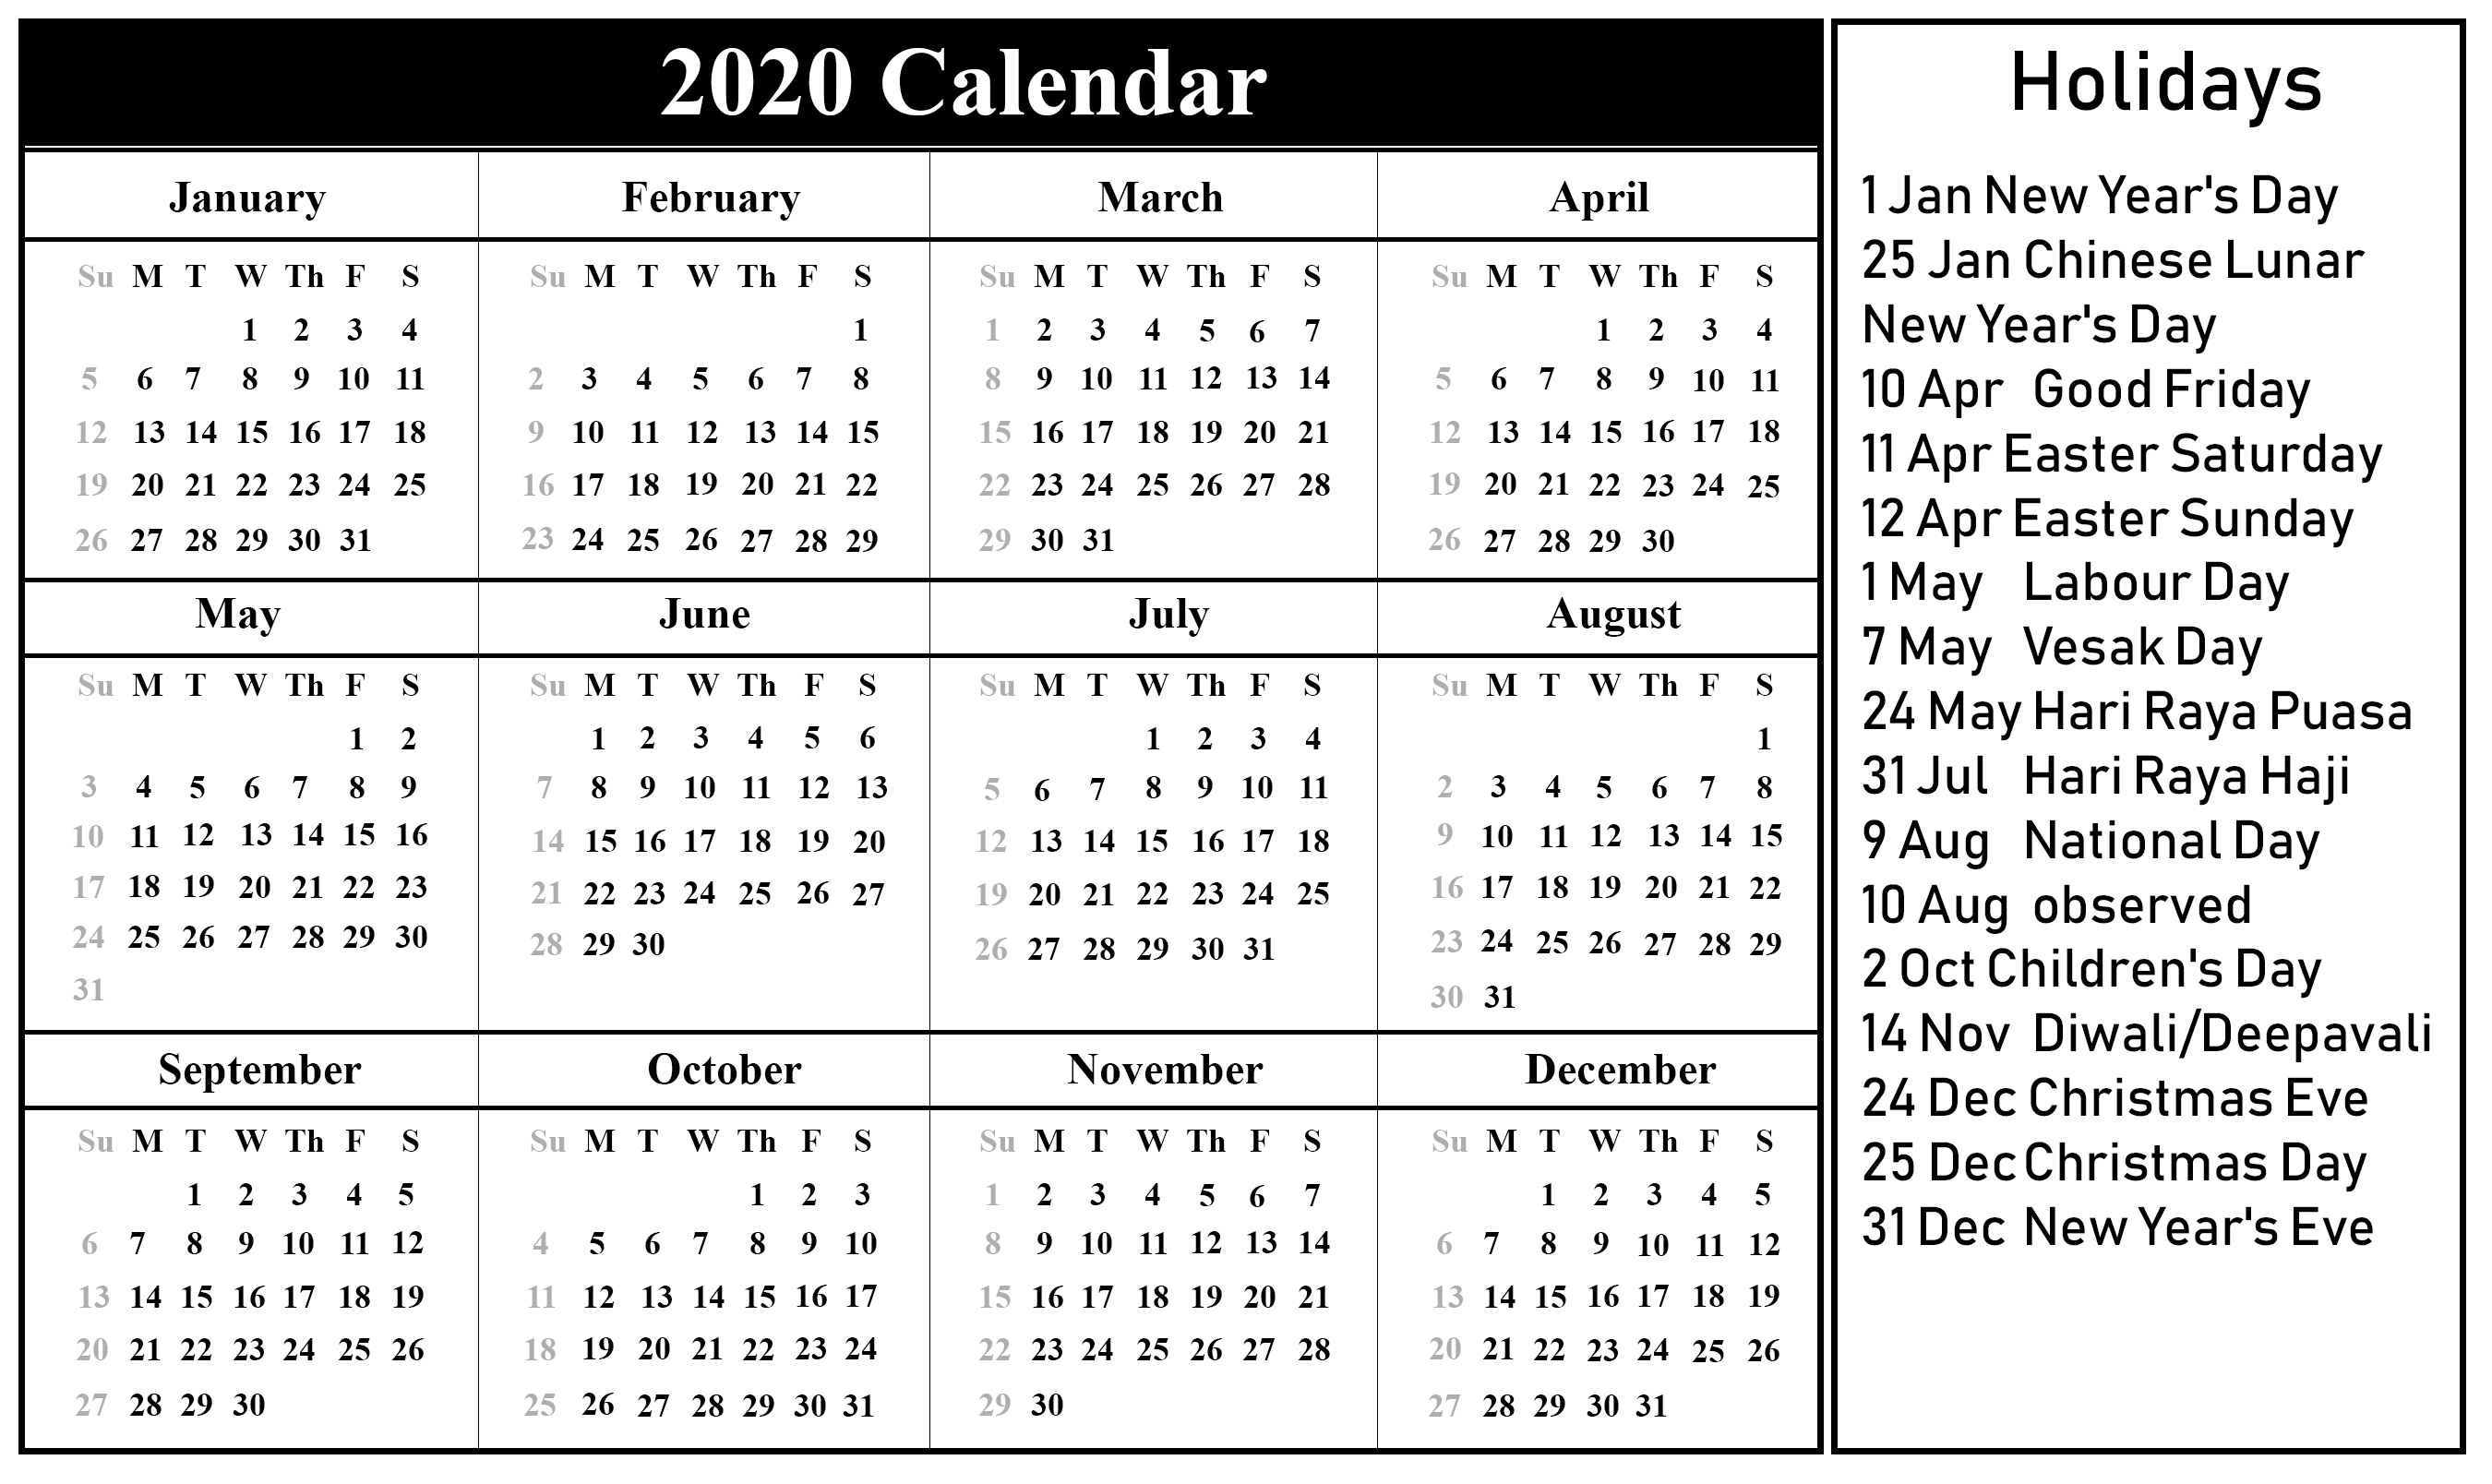 Printable 2020 Calendar With Holidays | Monthly Calendar-2020 Calendar With Holidays Listed